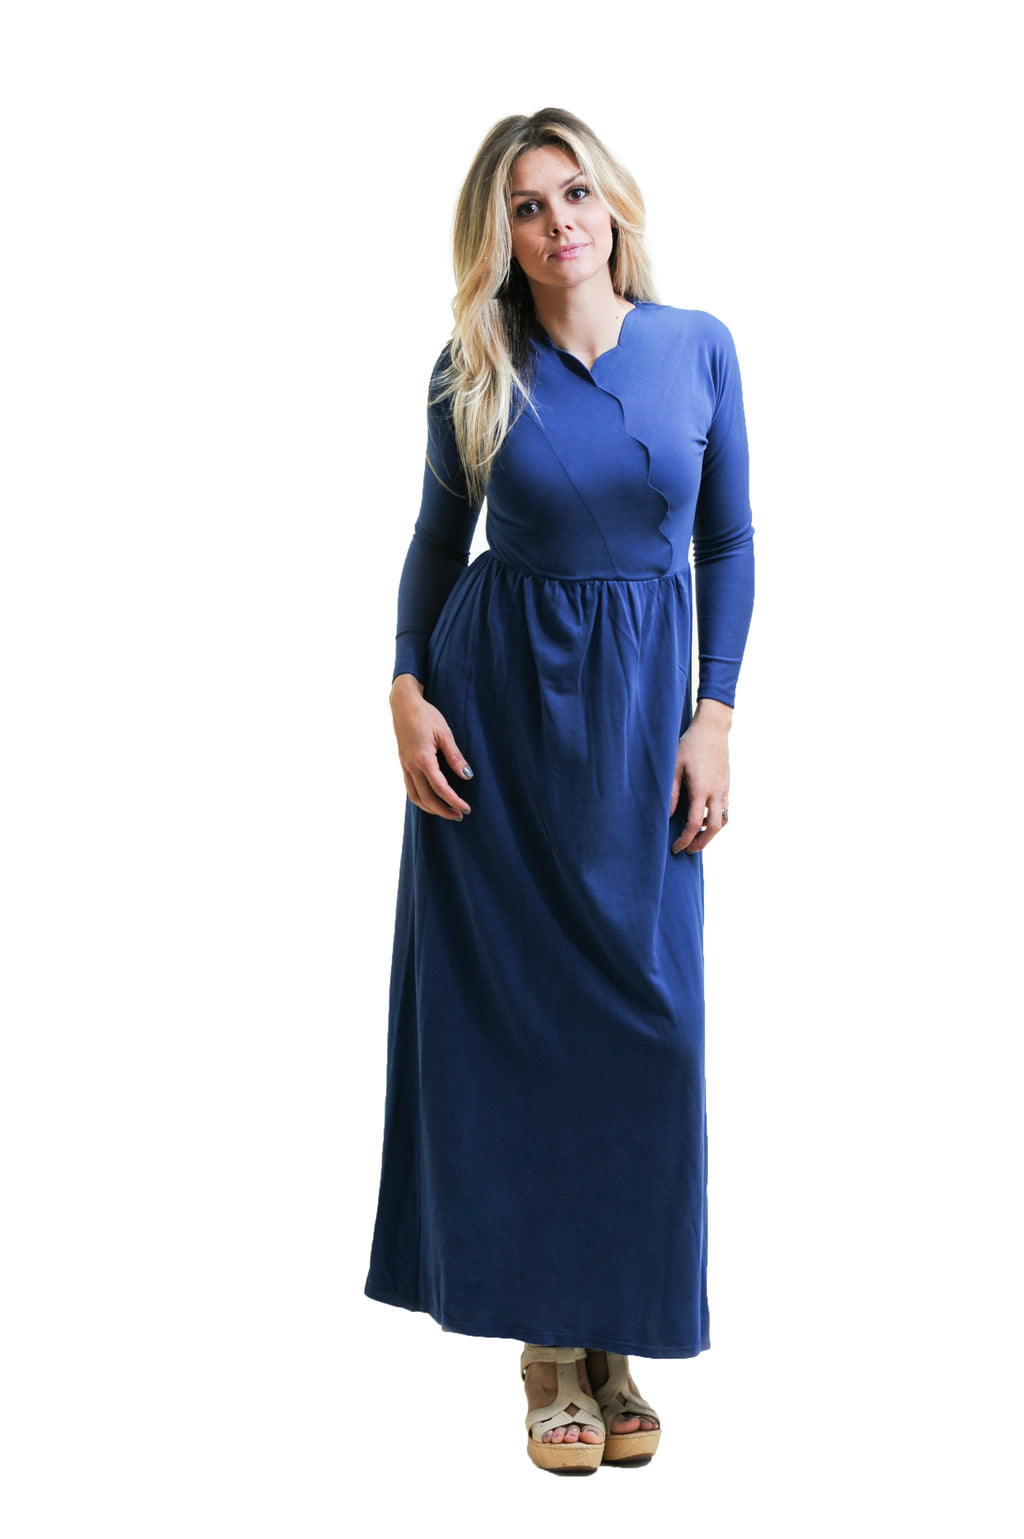 Scallop Maxi in Teal Nursing Friendly Maxi Dress with hidden snaps